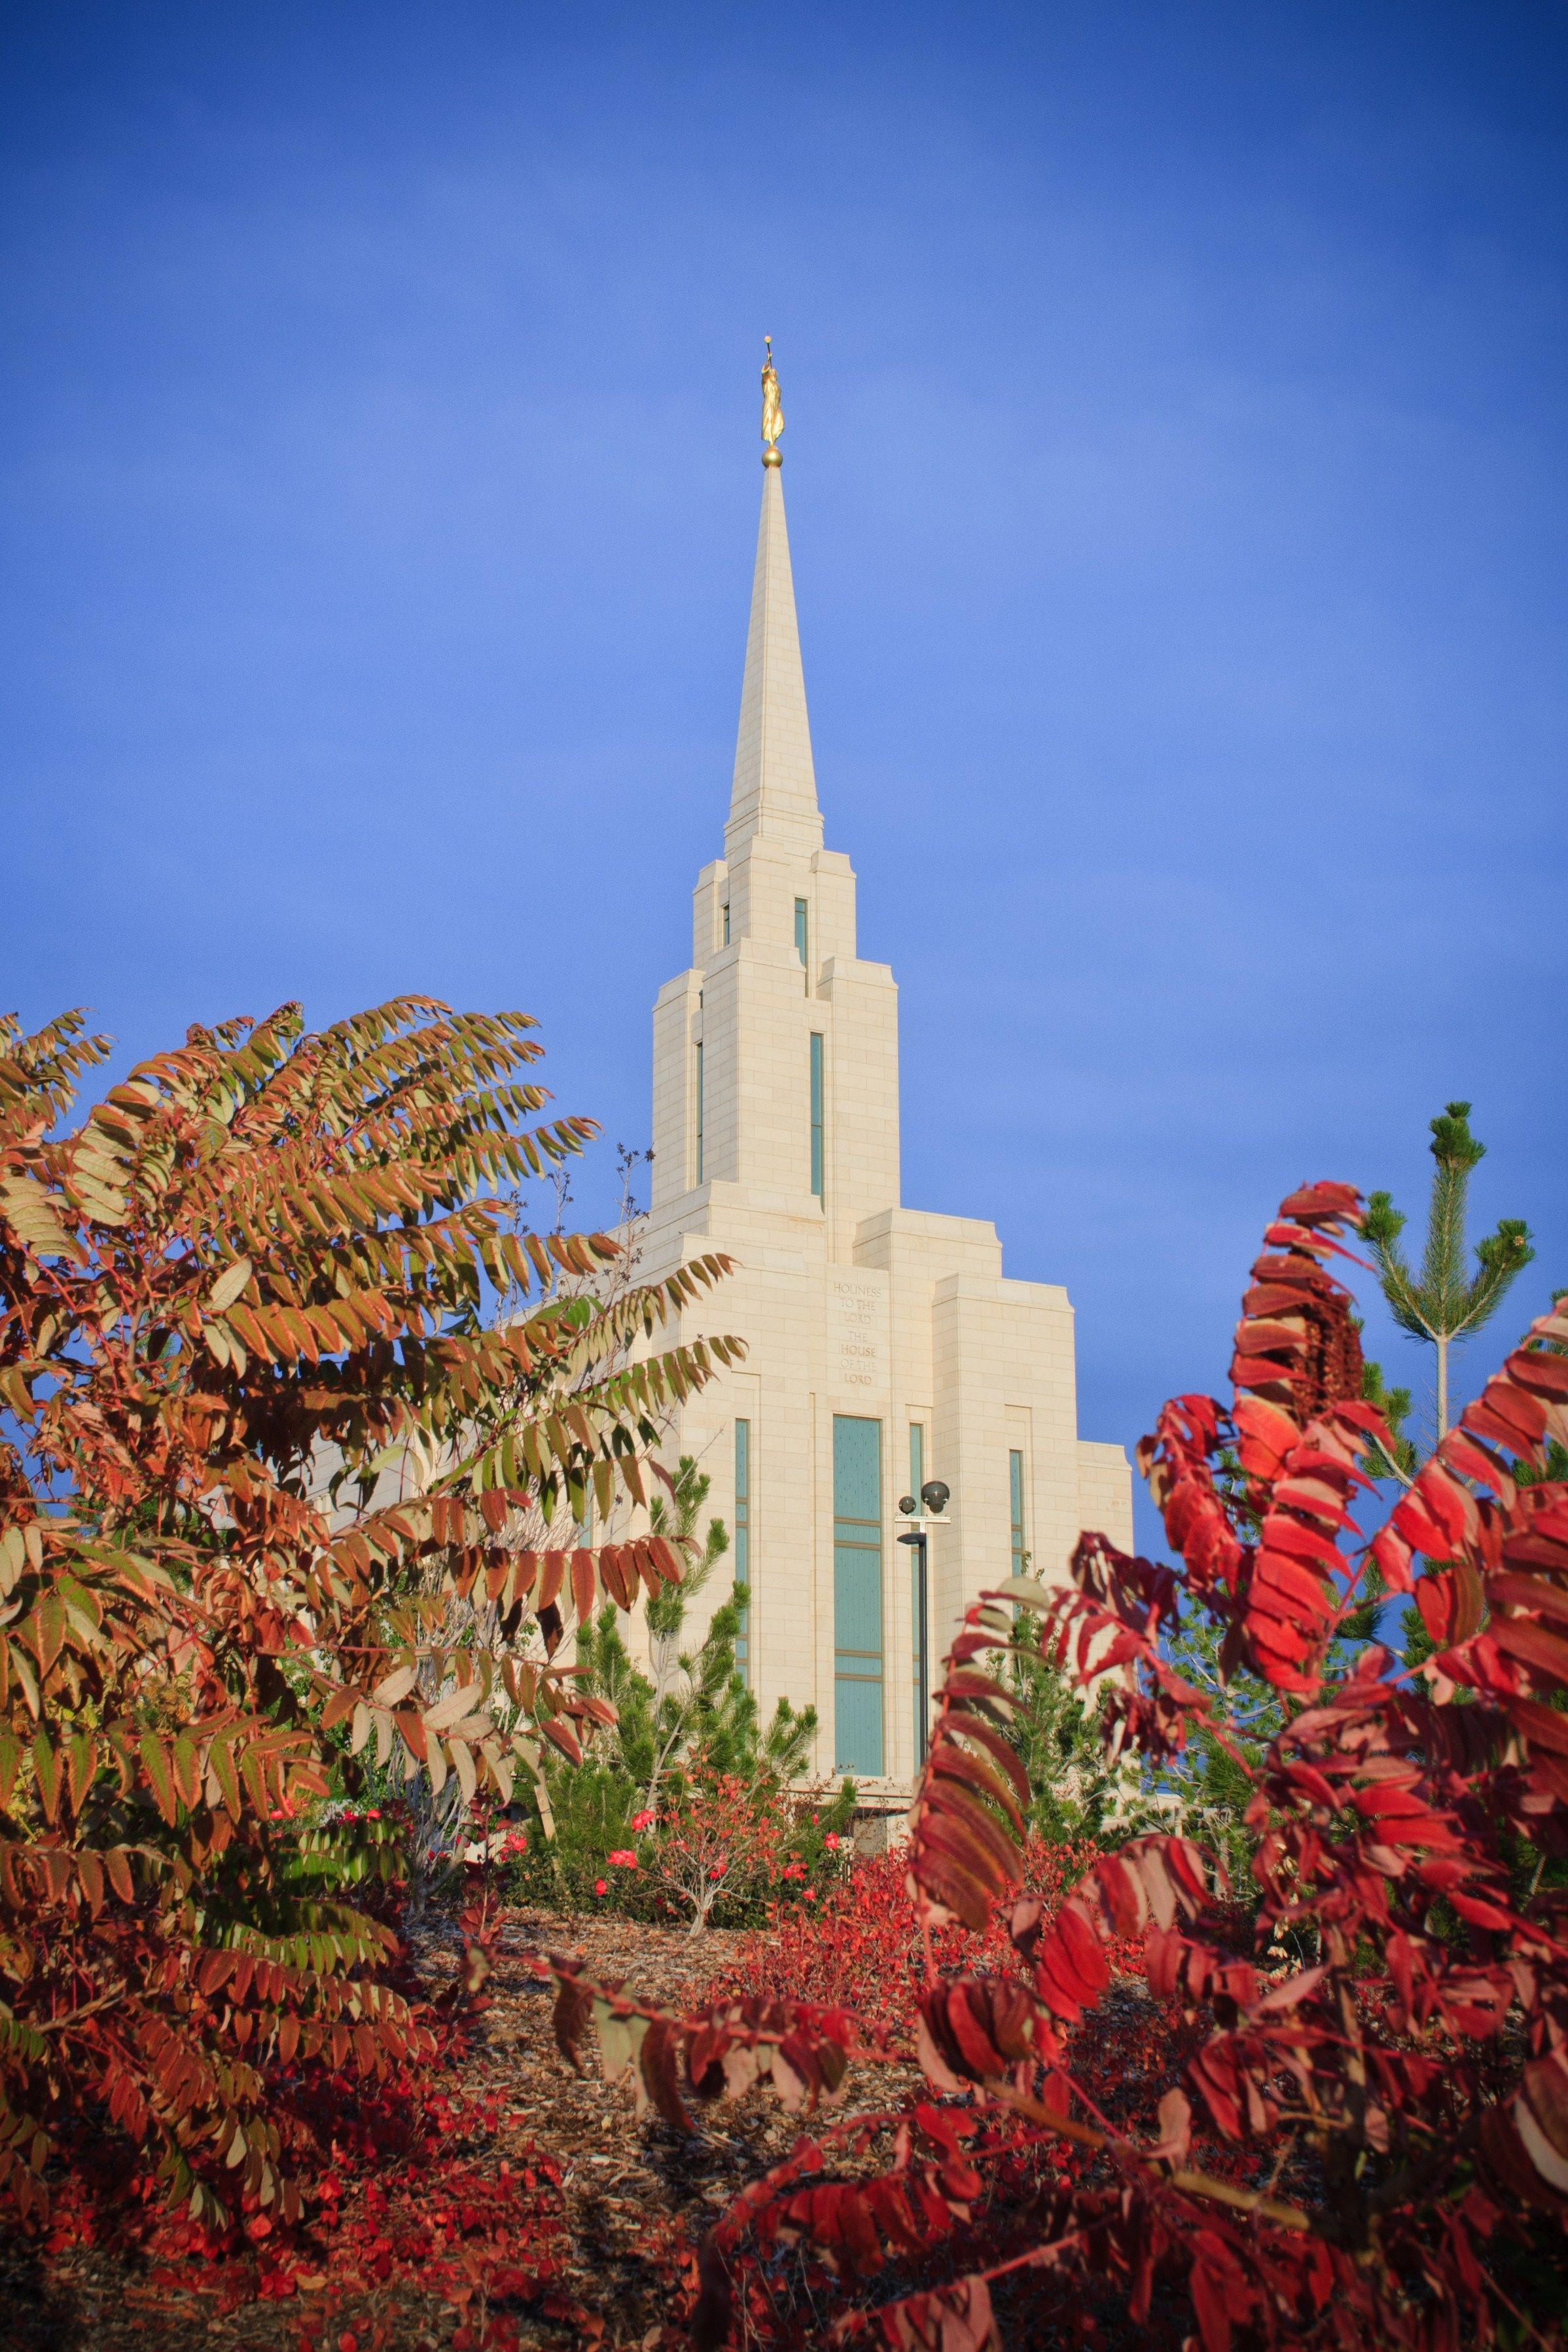 The Oquirrh Mountain Utah Temple in the fall, including the windows and spire.